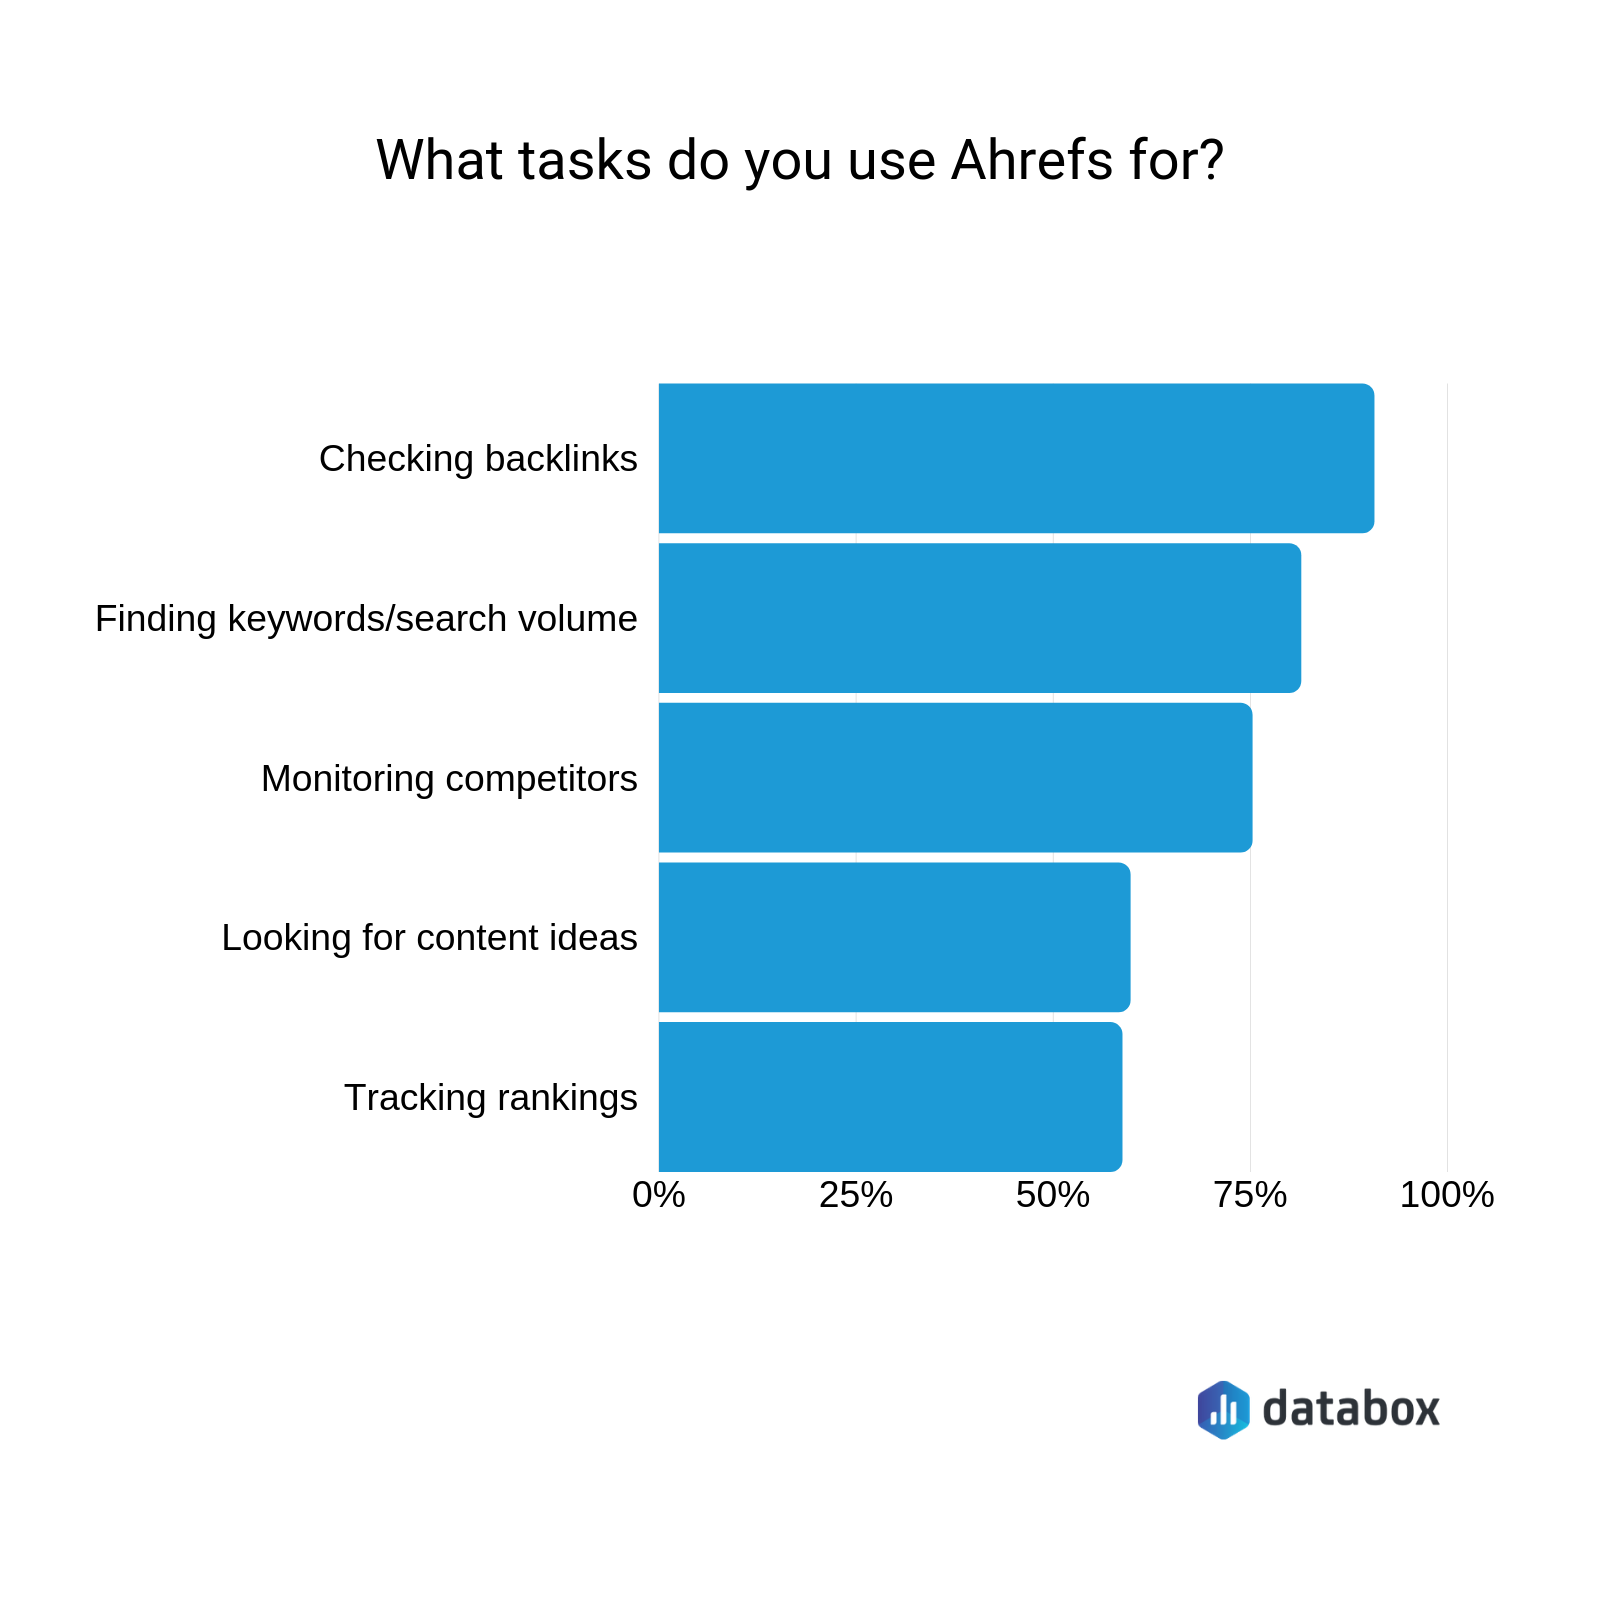 Here's How to Use Ahrefs for SEO (According to 97 Marketers)